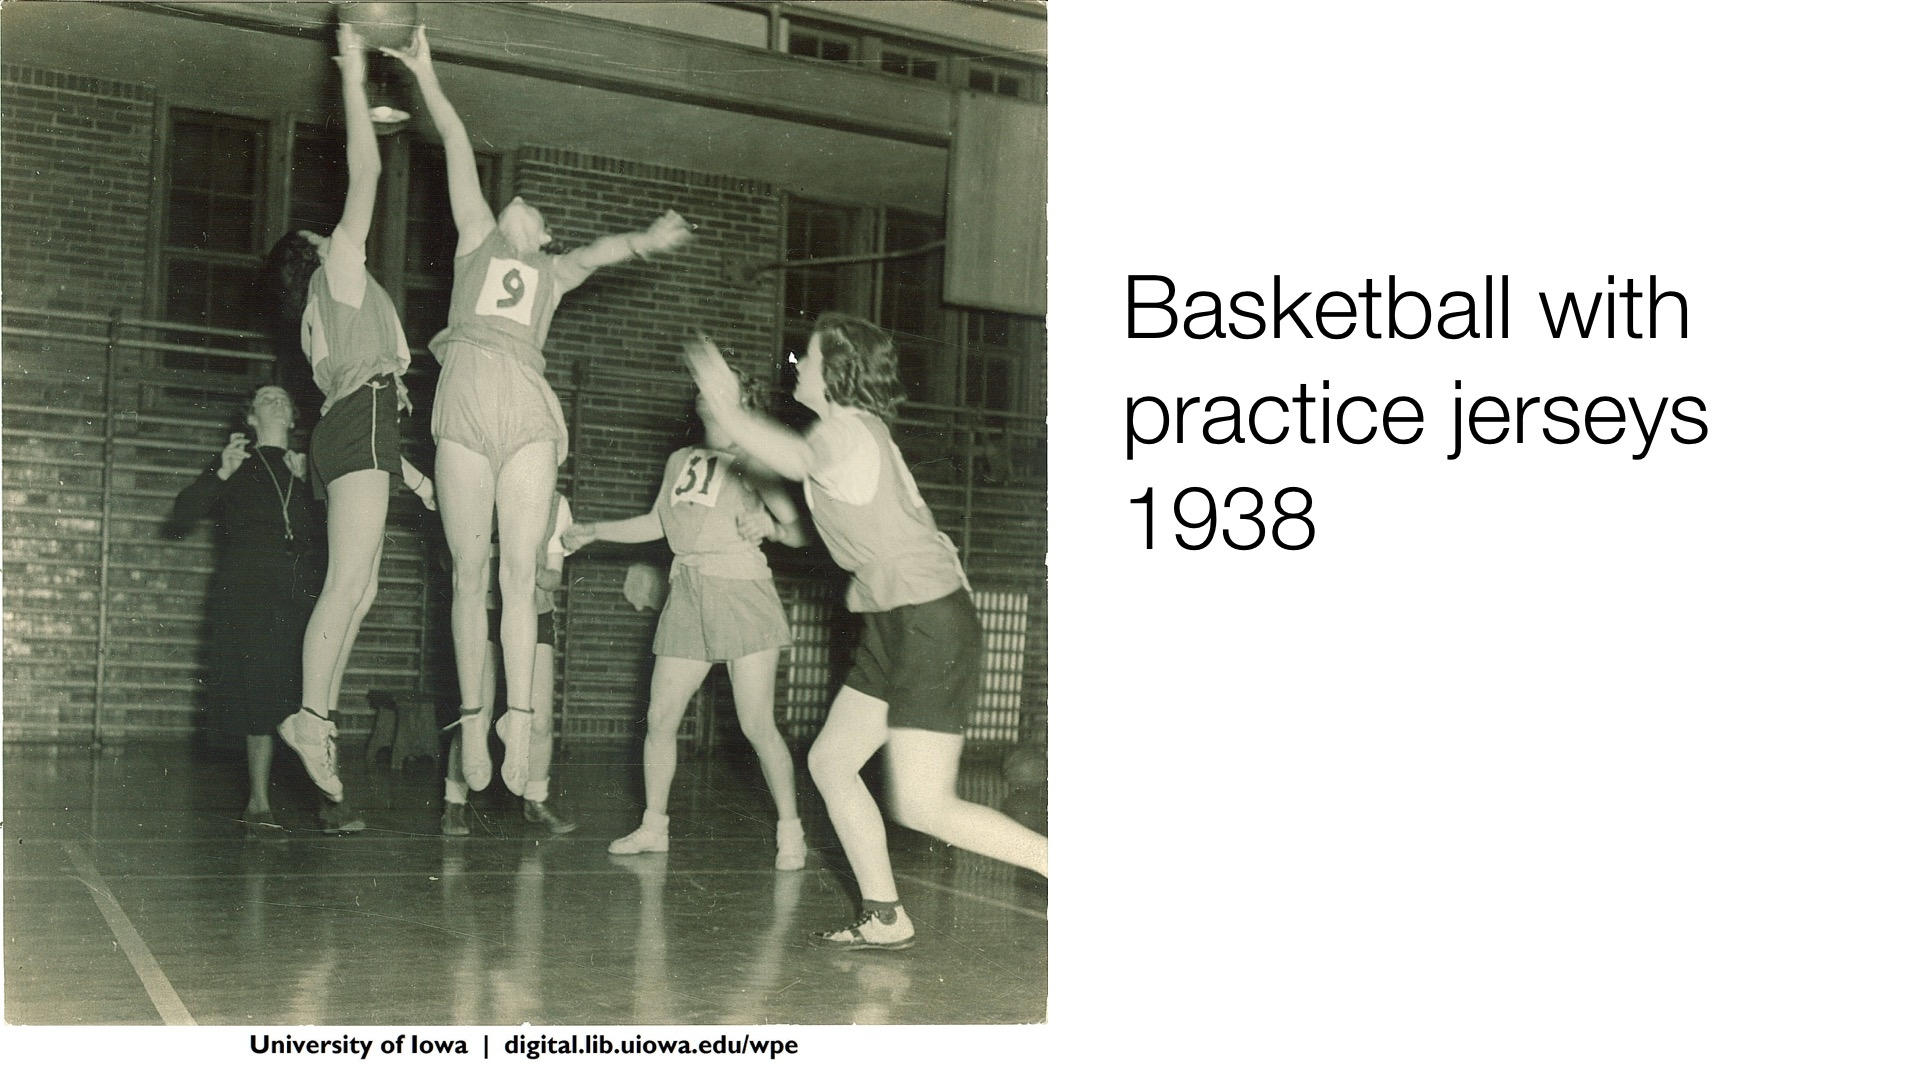 Basketball with practice jersey, 1938